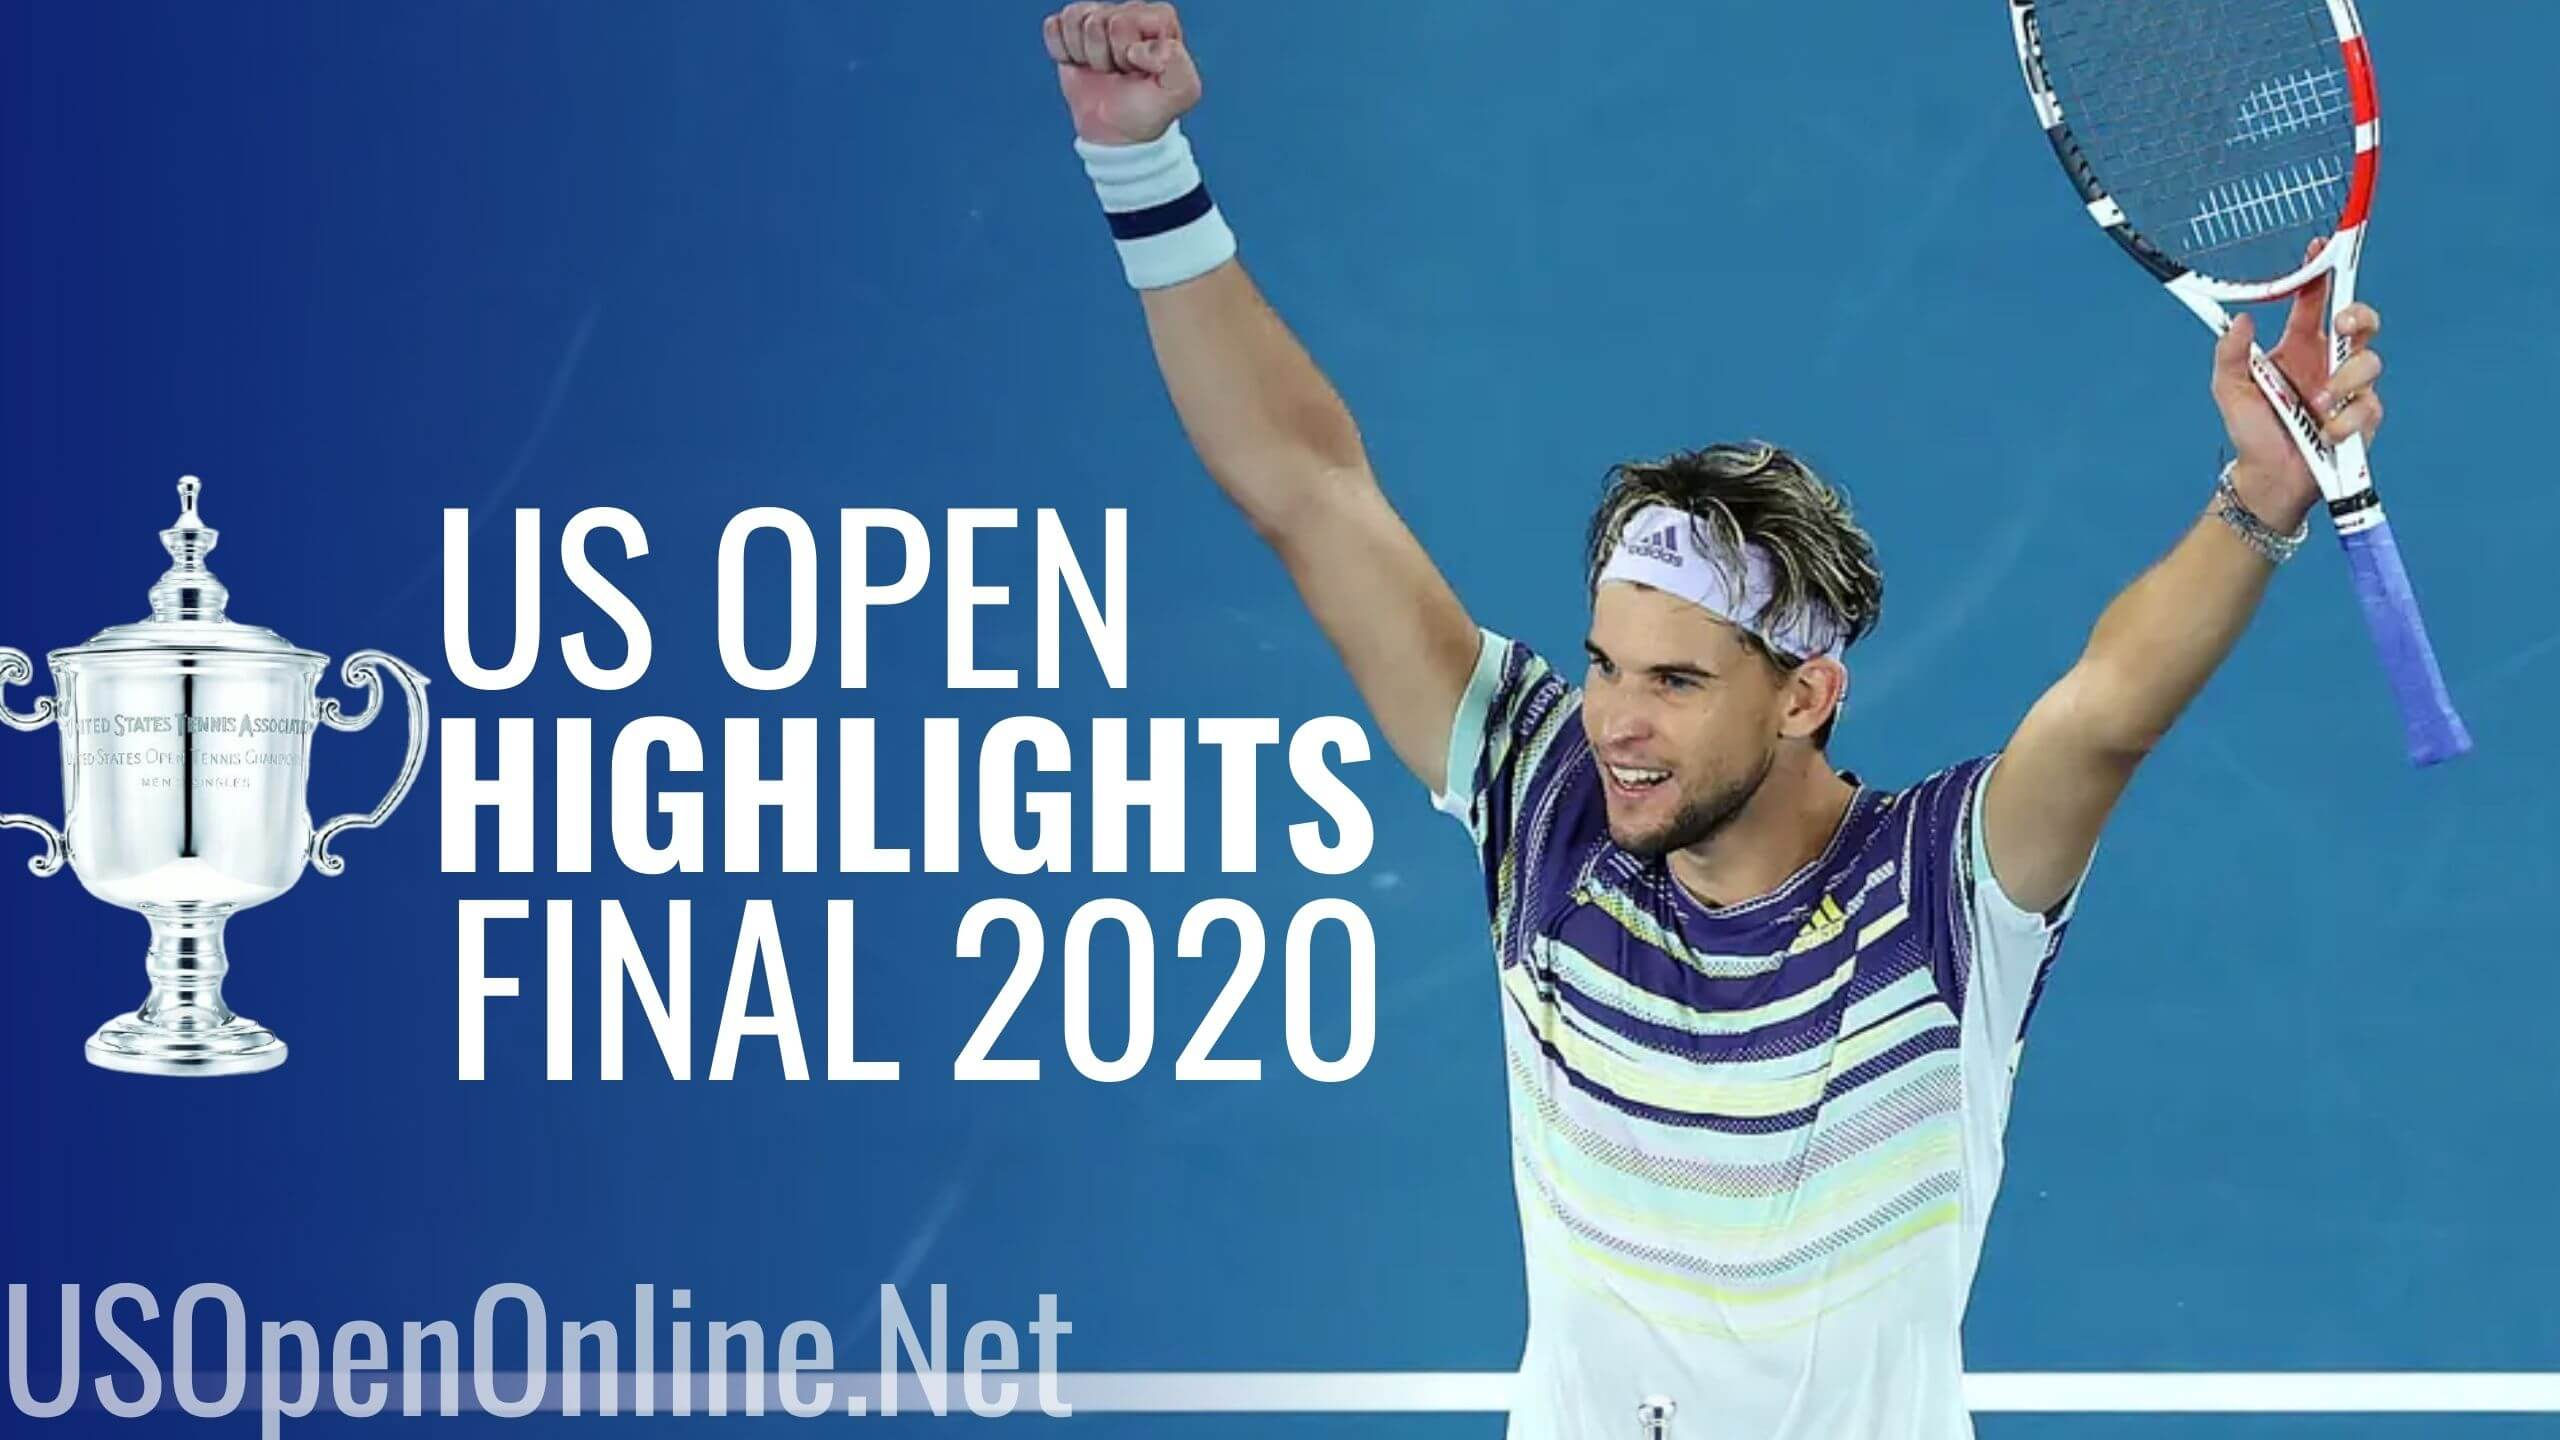 Zverev Vs Thiem Final Highlights US Open 2020